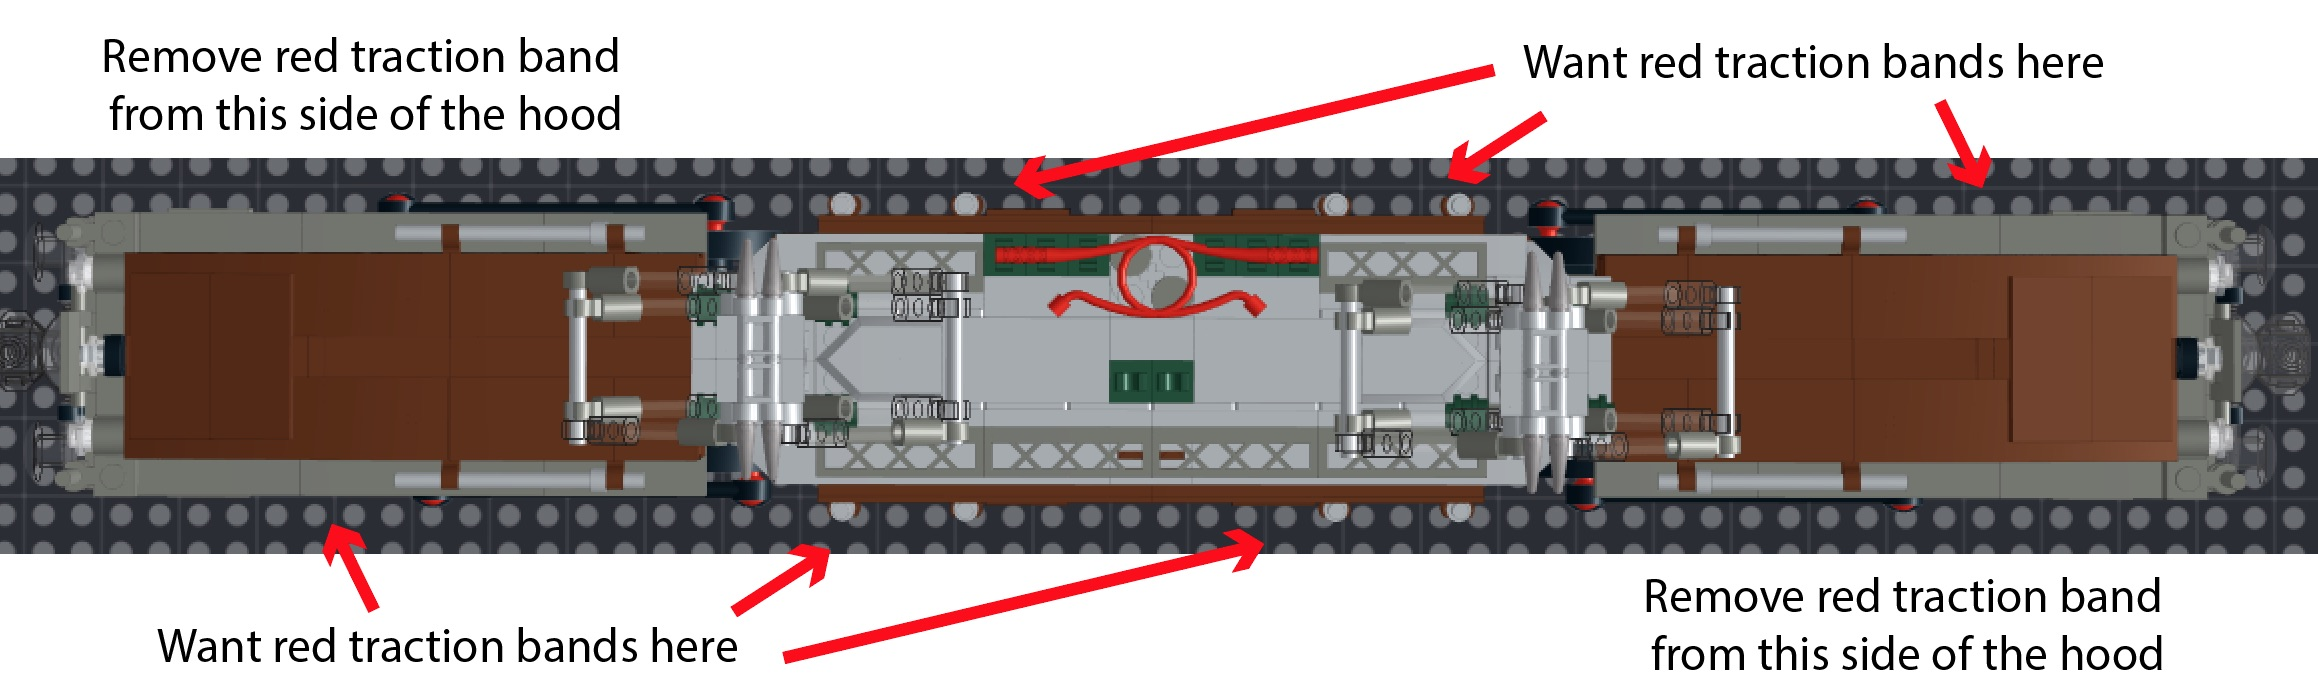 p5_traction_bands.jpg